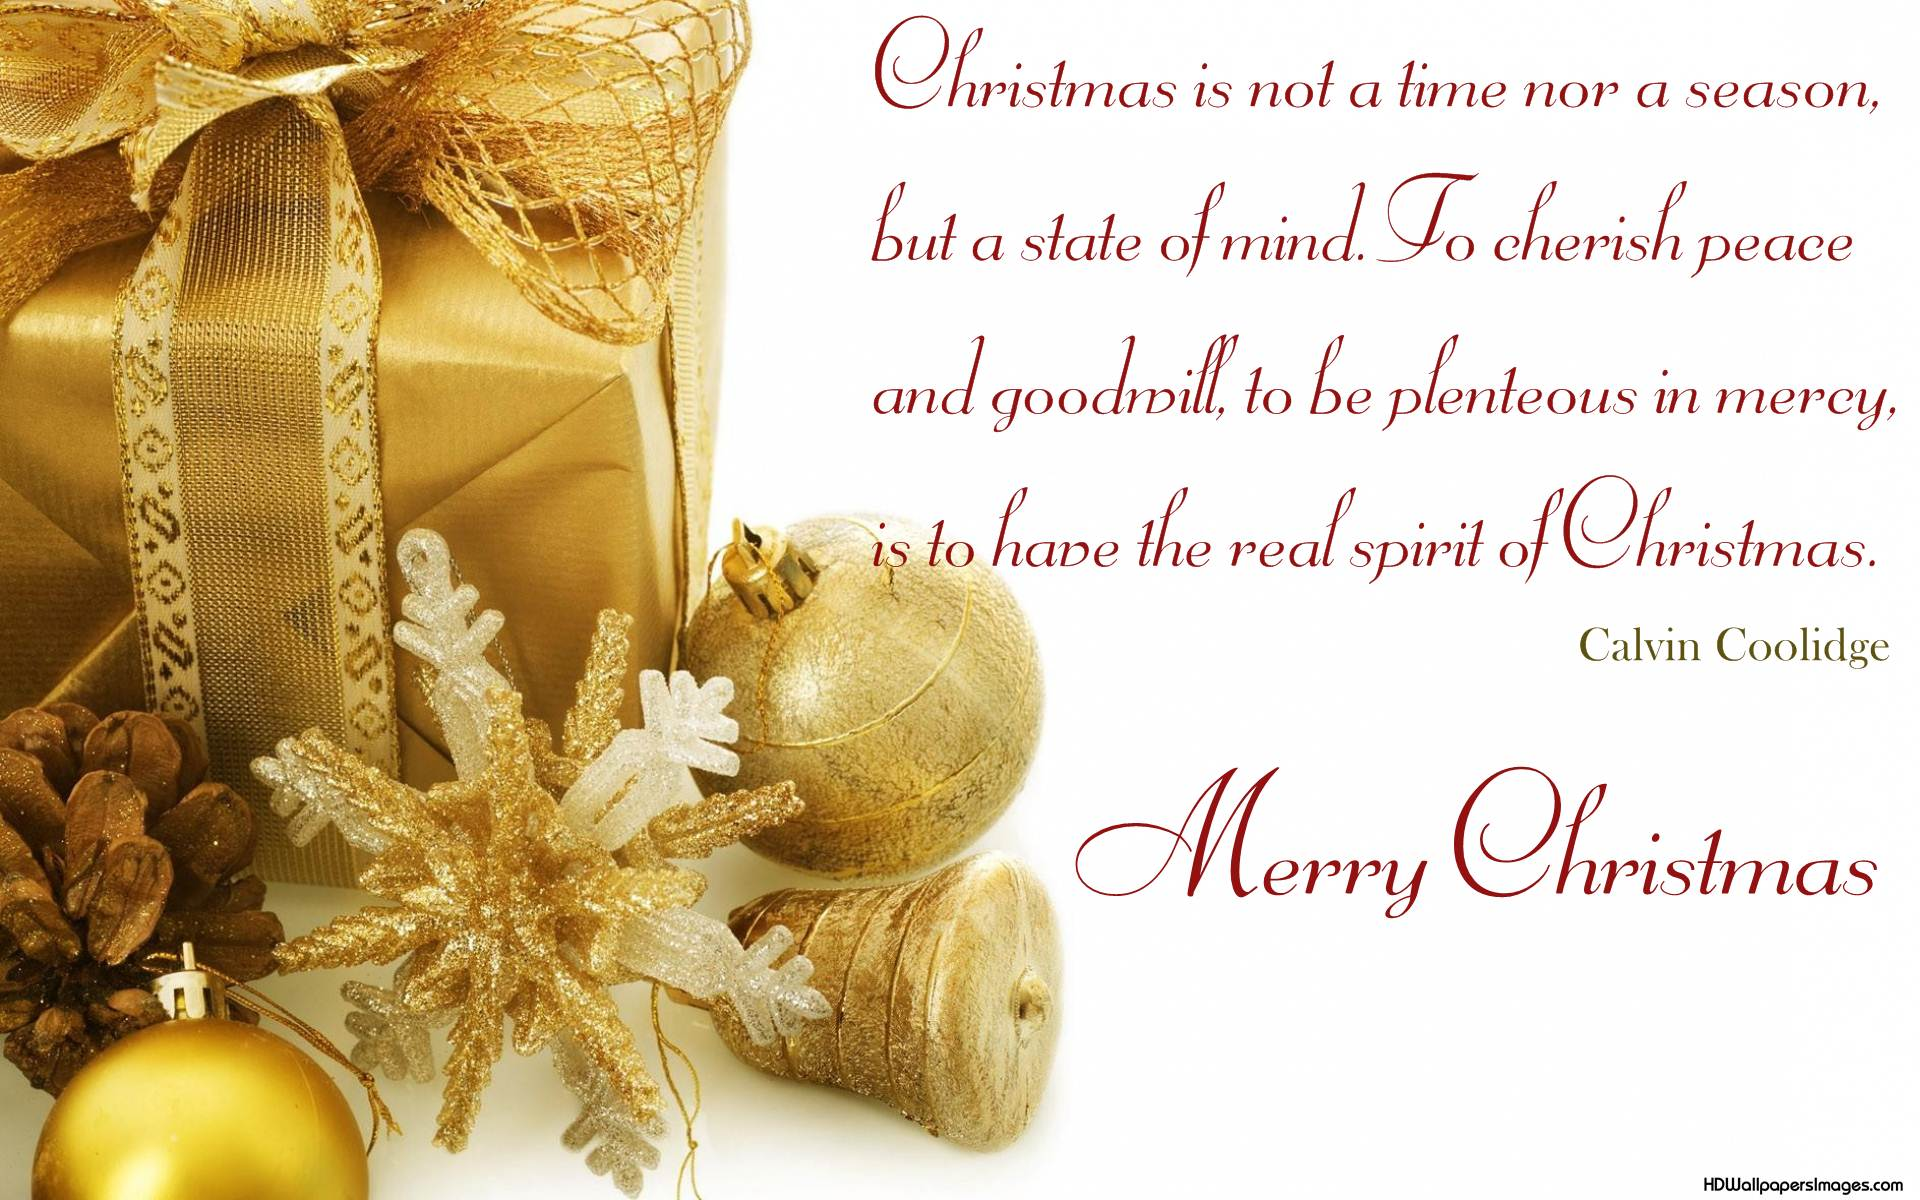 20 Merry Christmas Quotes 2014 Picshunger